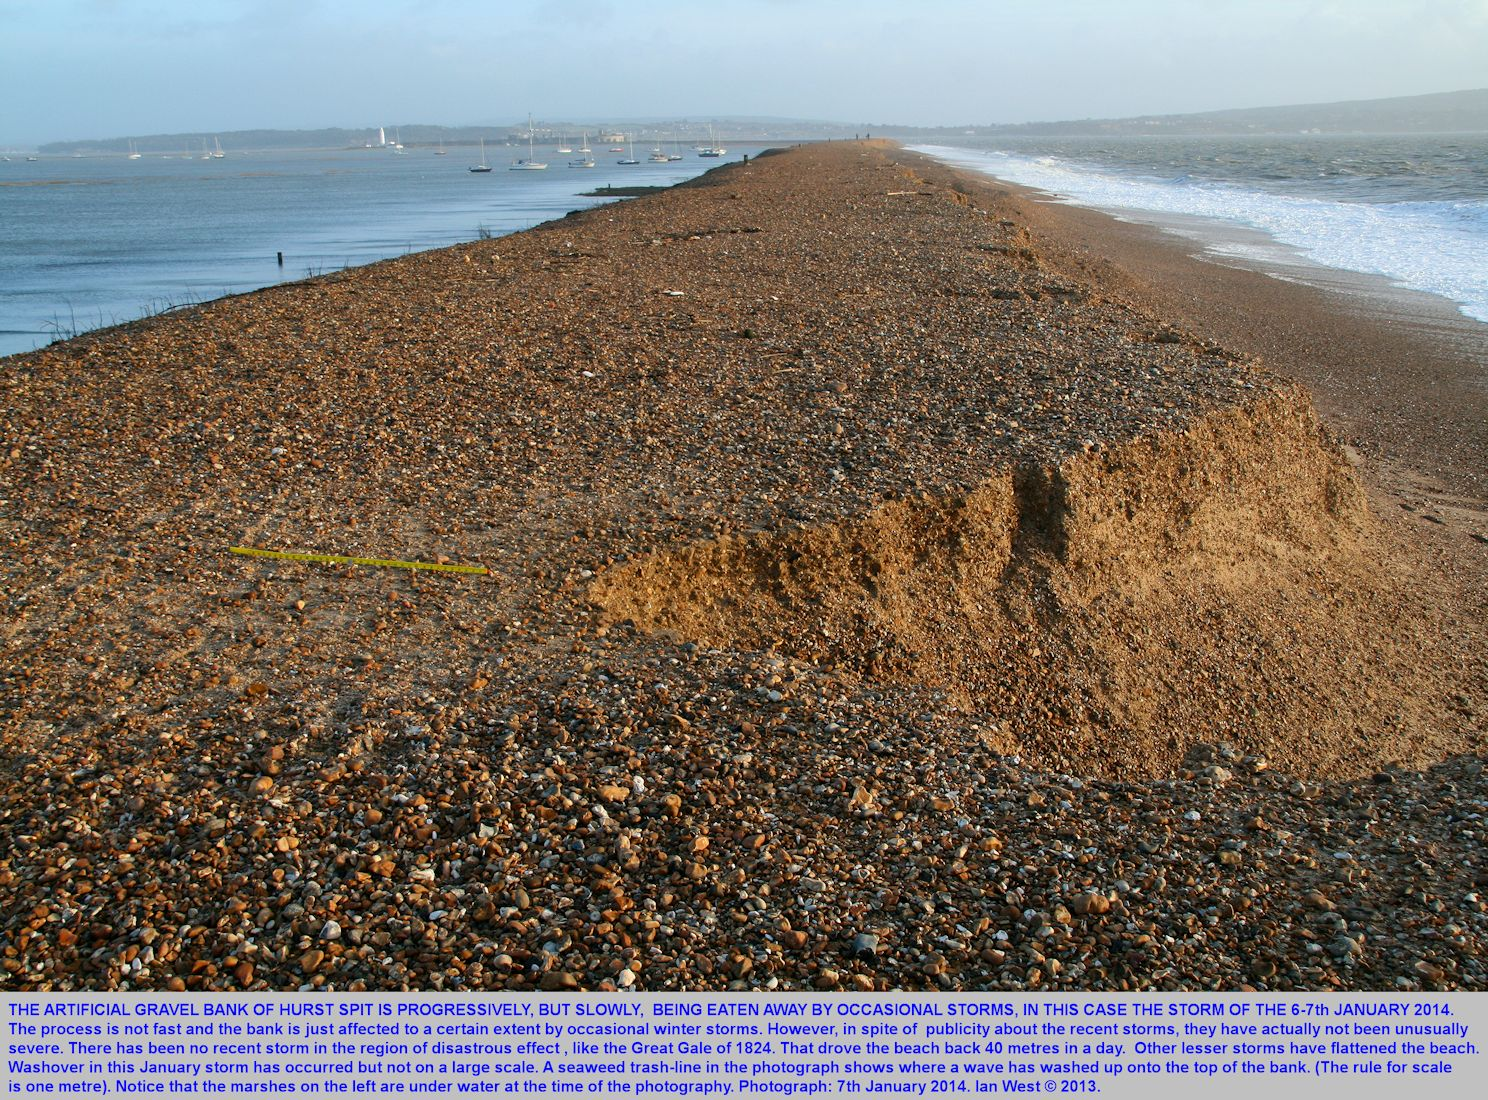 Erosion on the seaward side of Hurst Spit, Hampshire, seen after the storm of 6-7 January, 2014